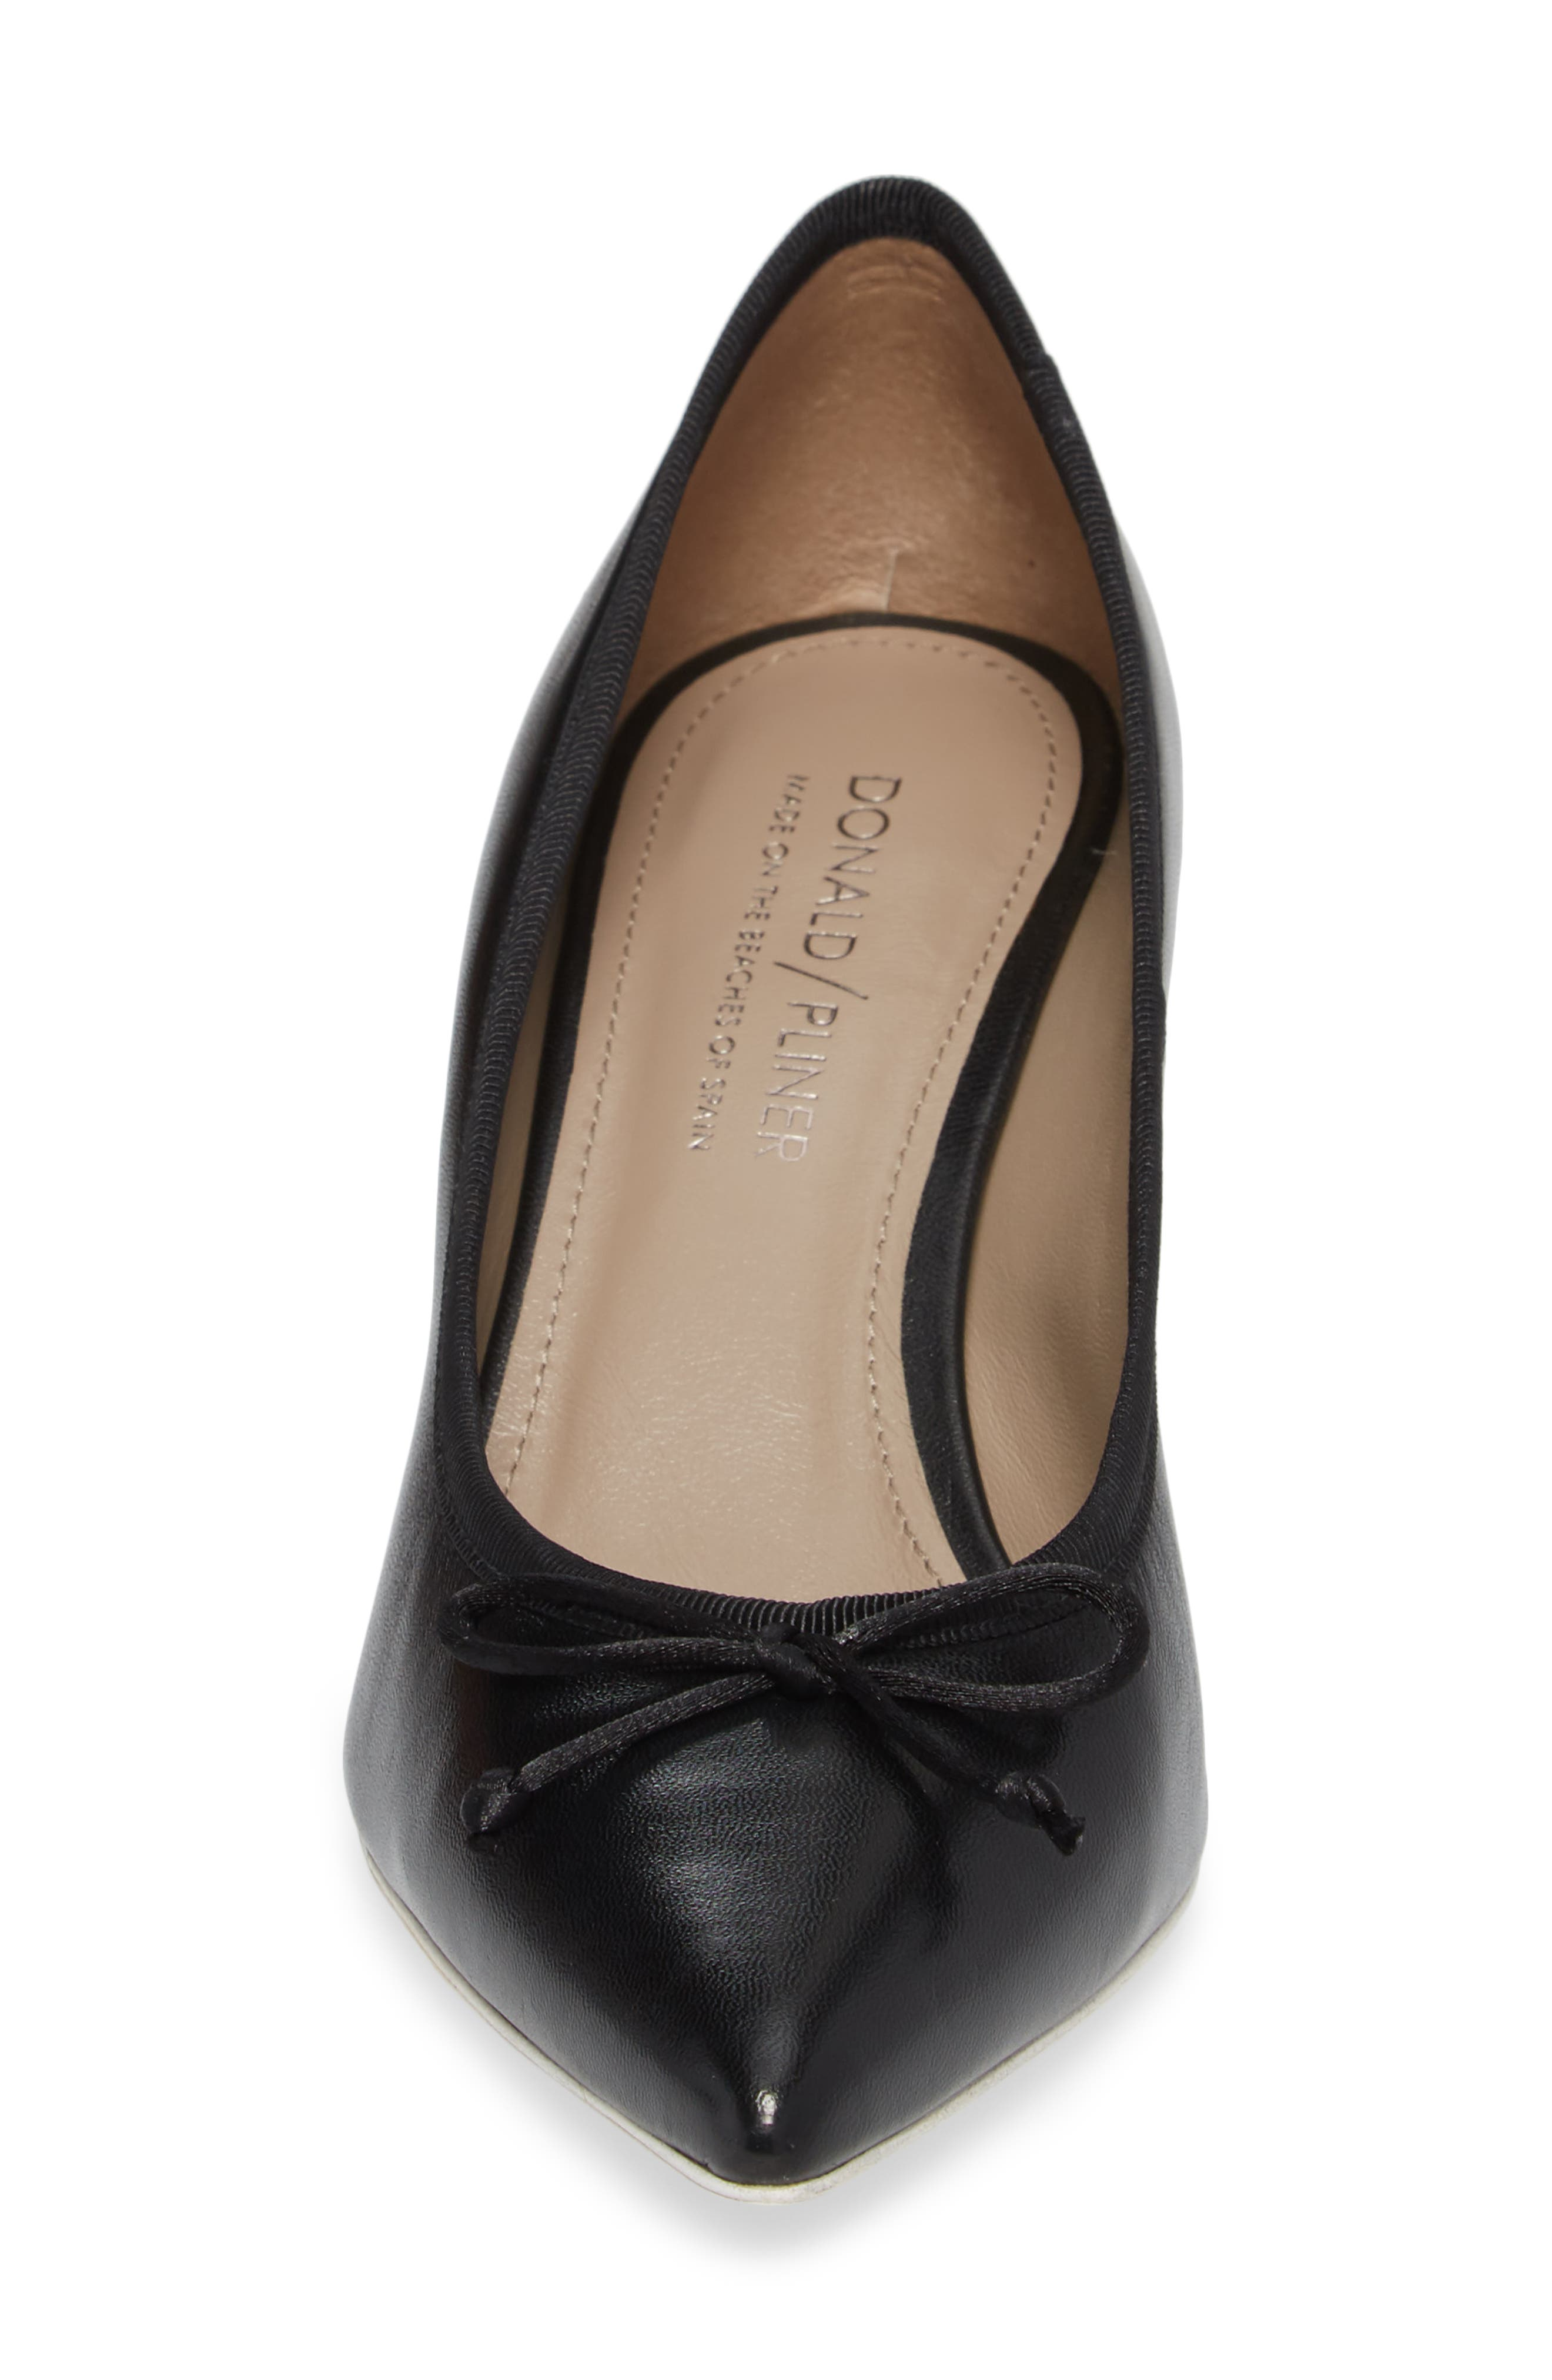 Asia Pointy Toe Pump,                             Alternate thumbnail 4, color,                             Black Leather